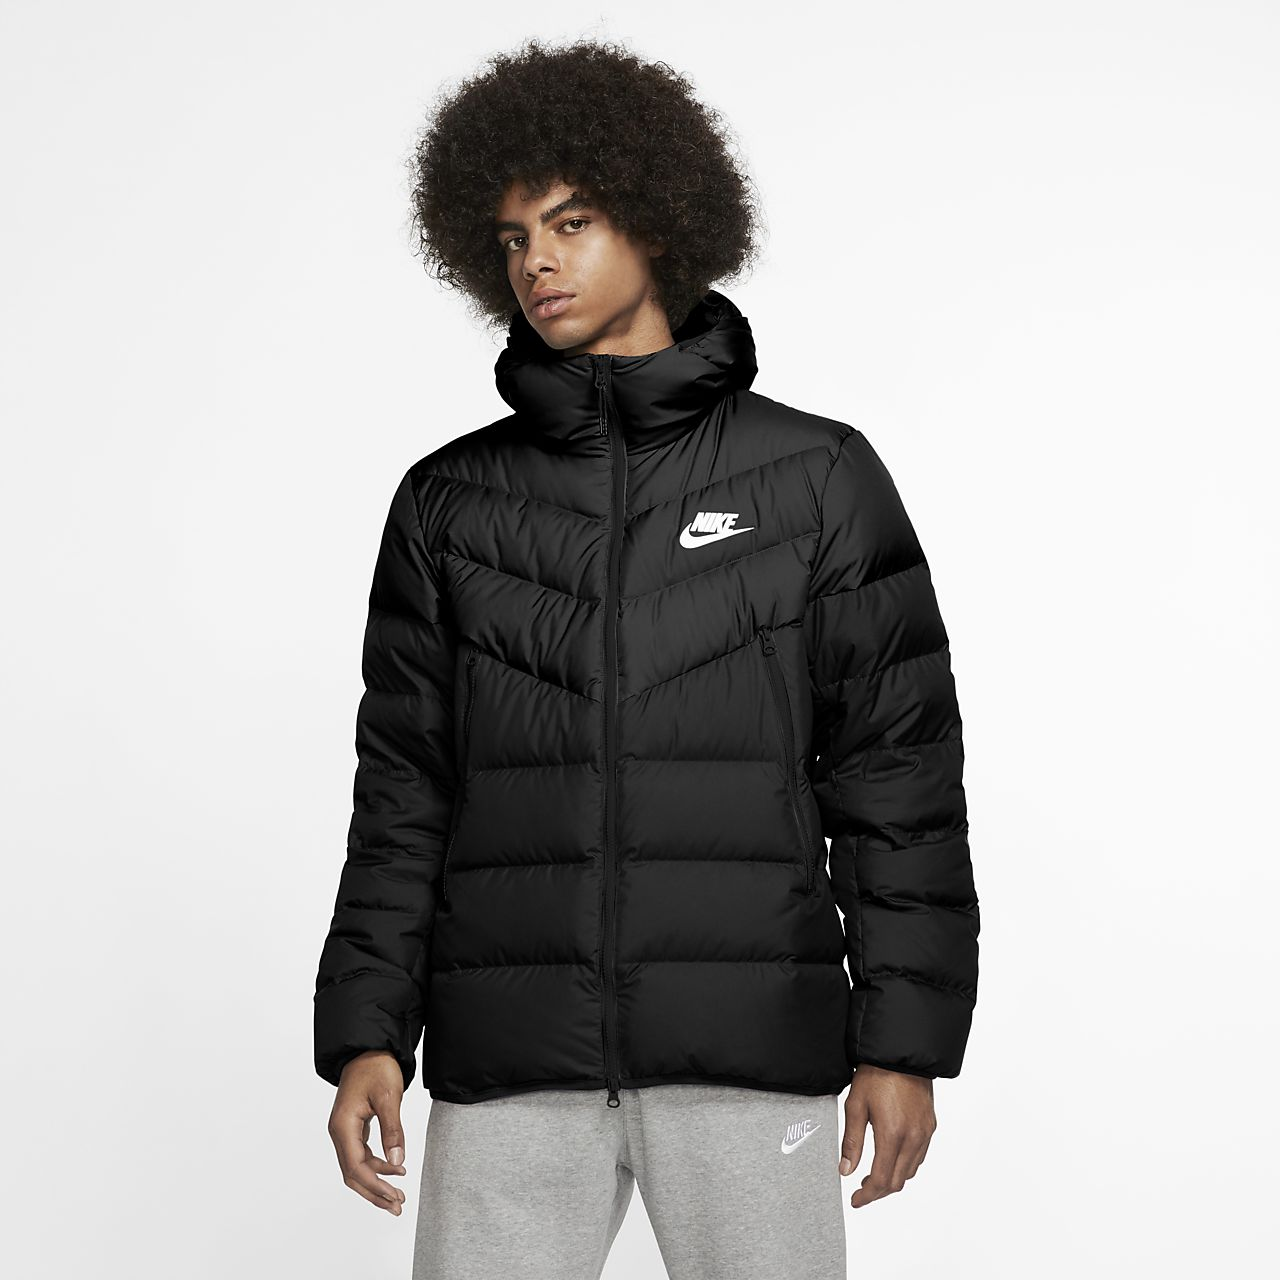 098f6a66adaf Nike Sportswear Windrunner Down-Fill Men s Hooded Jacket. Nike.com CA